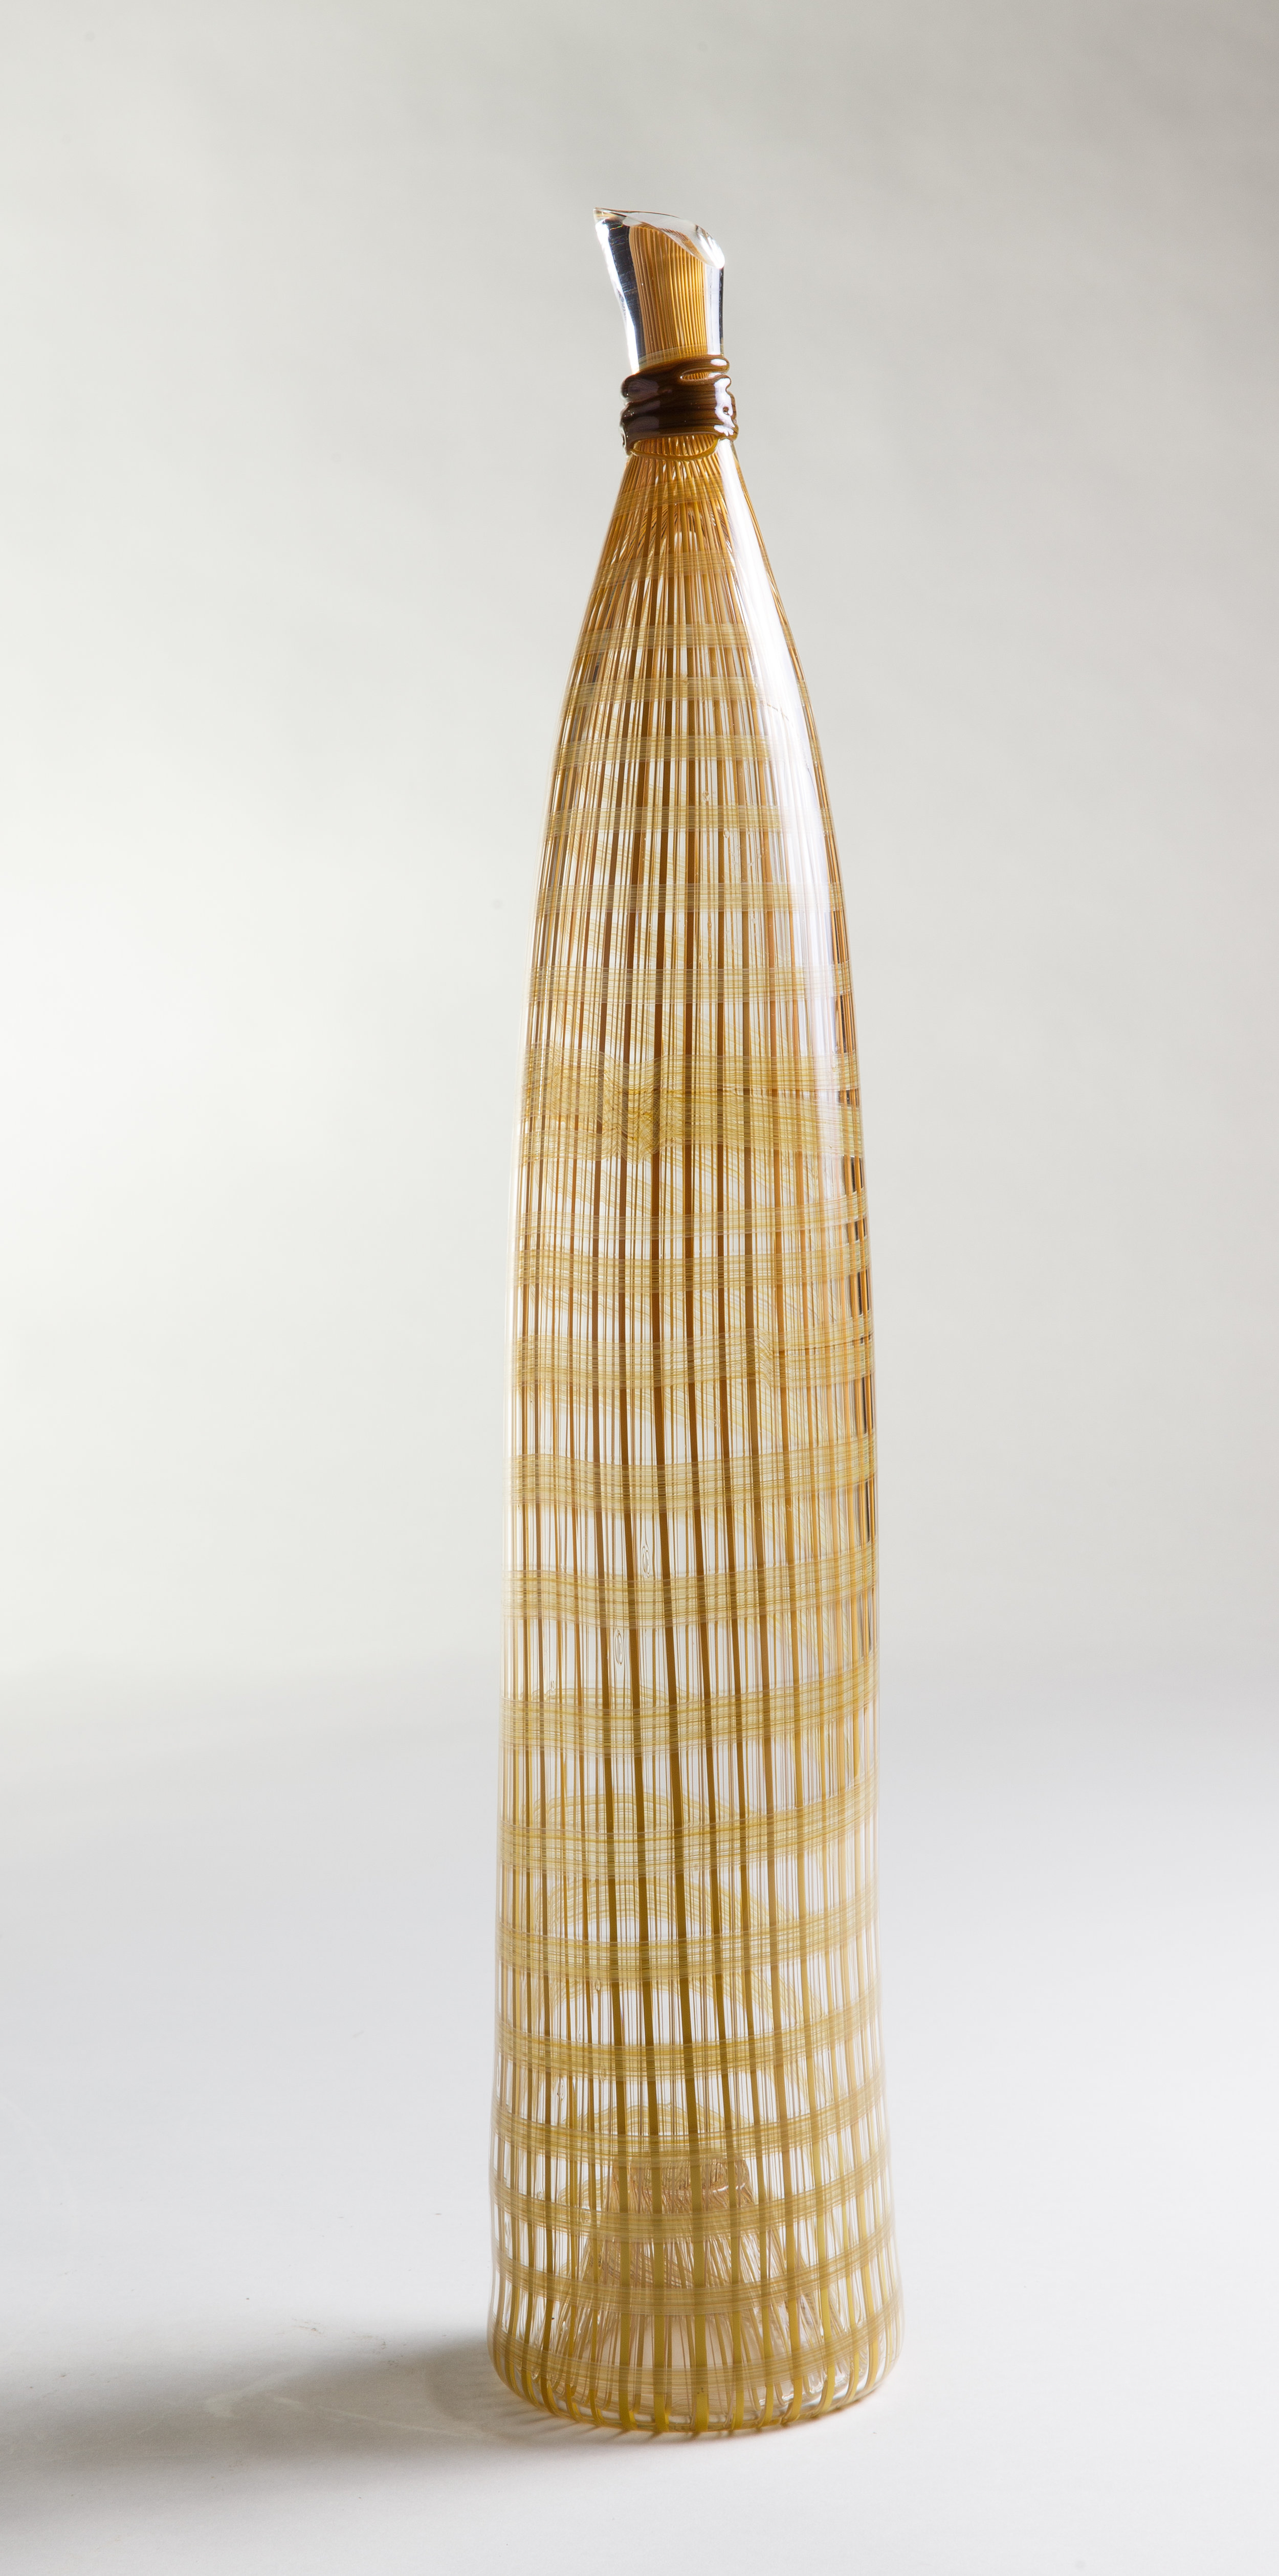 Jenni Kemarre Martiniello  Medium Golden Canes Fish Trap #1  - hot blown glass with canes, 12.5 x 61 x 12.5 cm, 2017   EMAIL INQUIRY